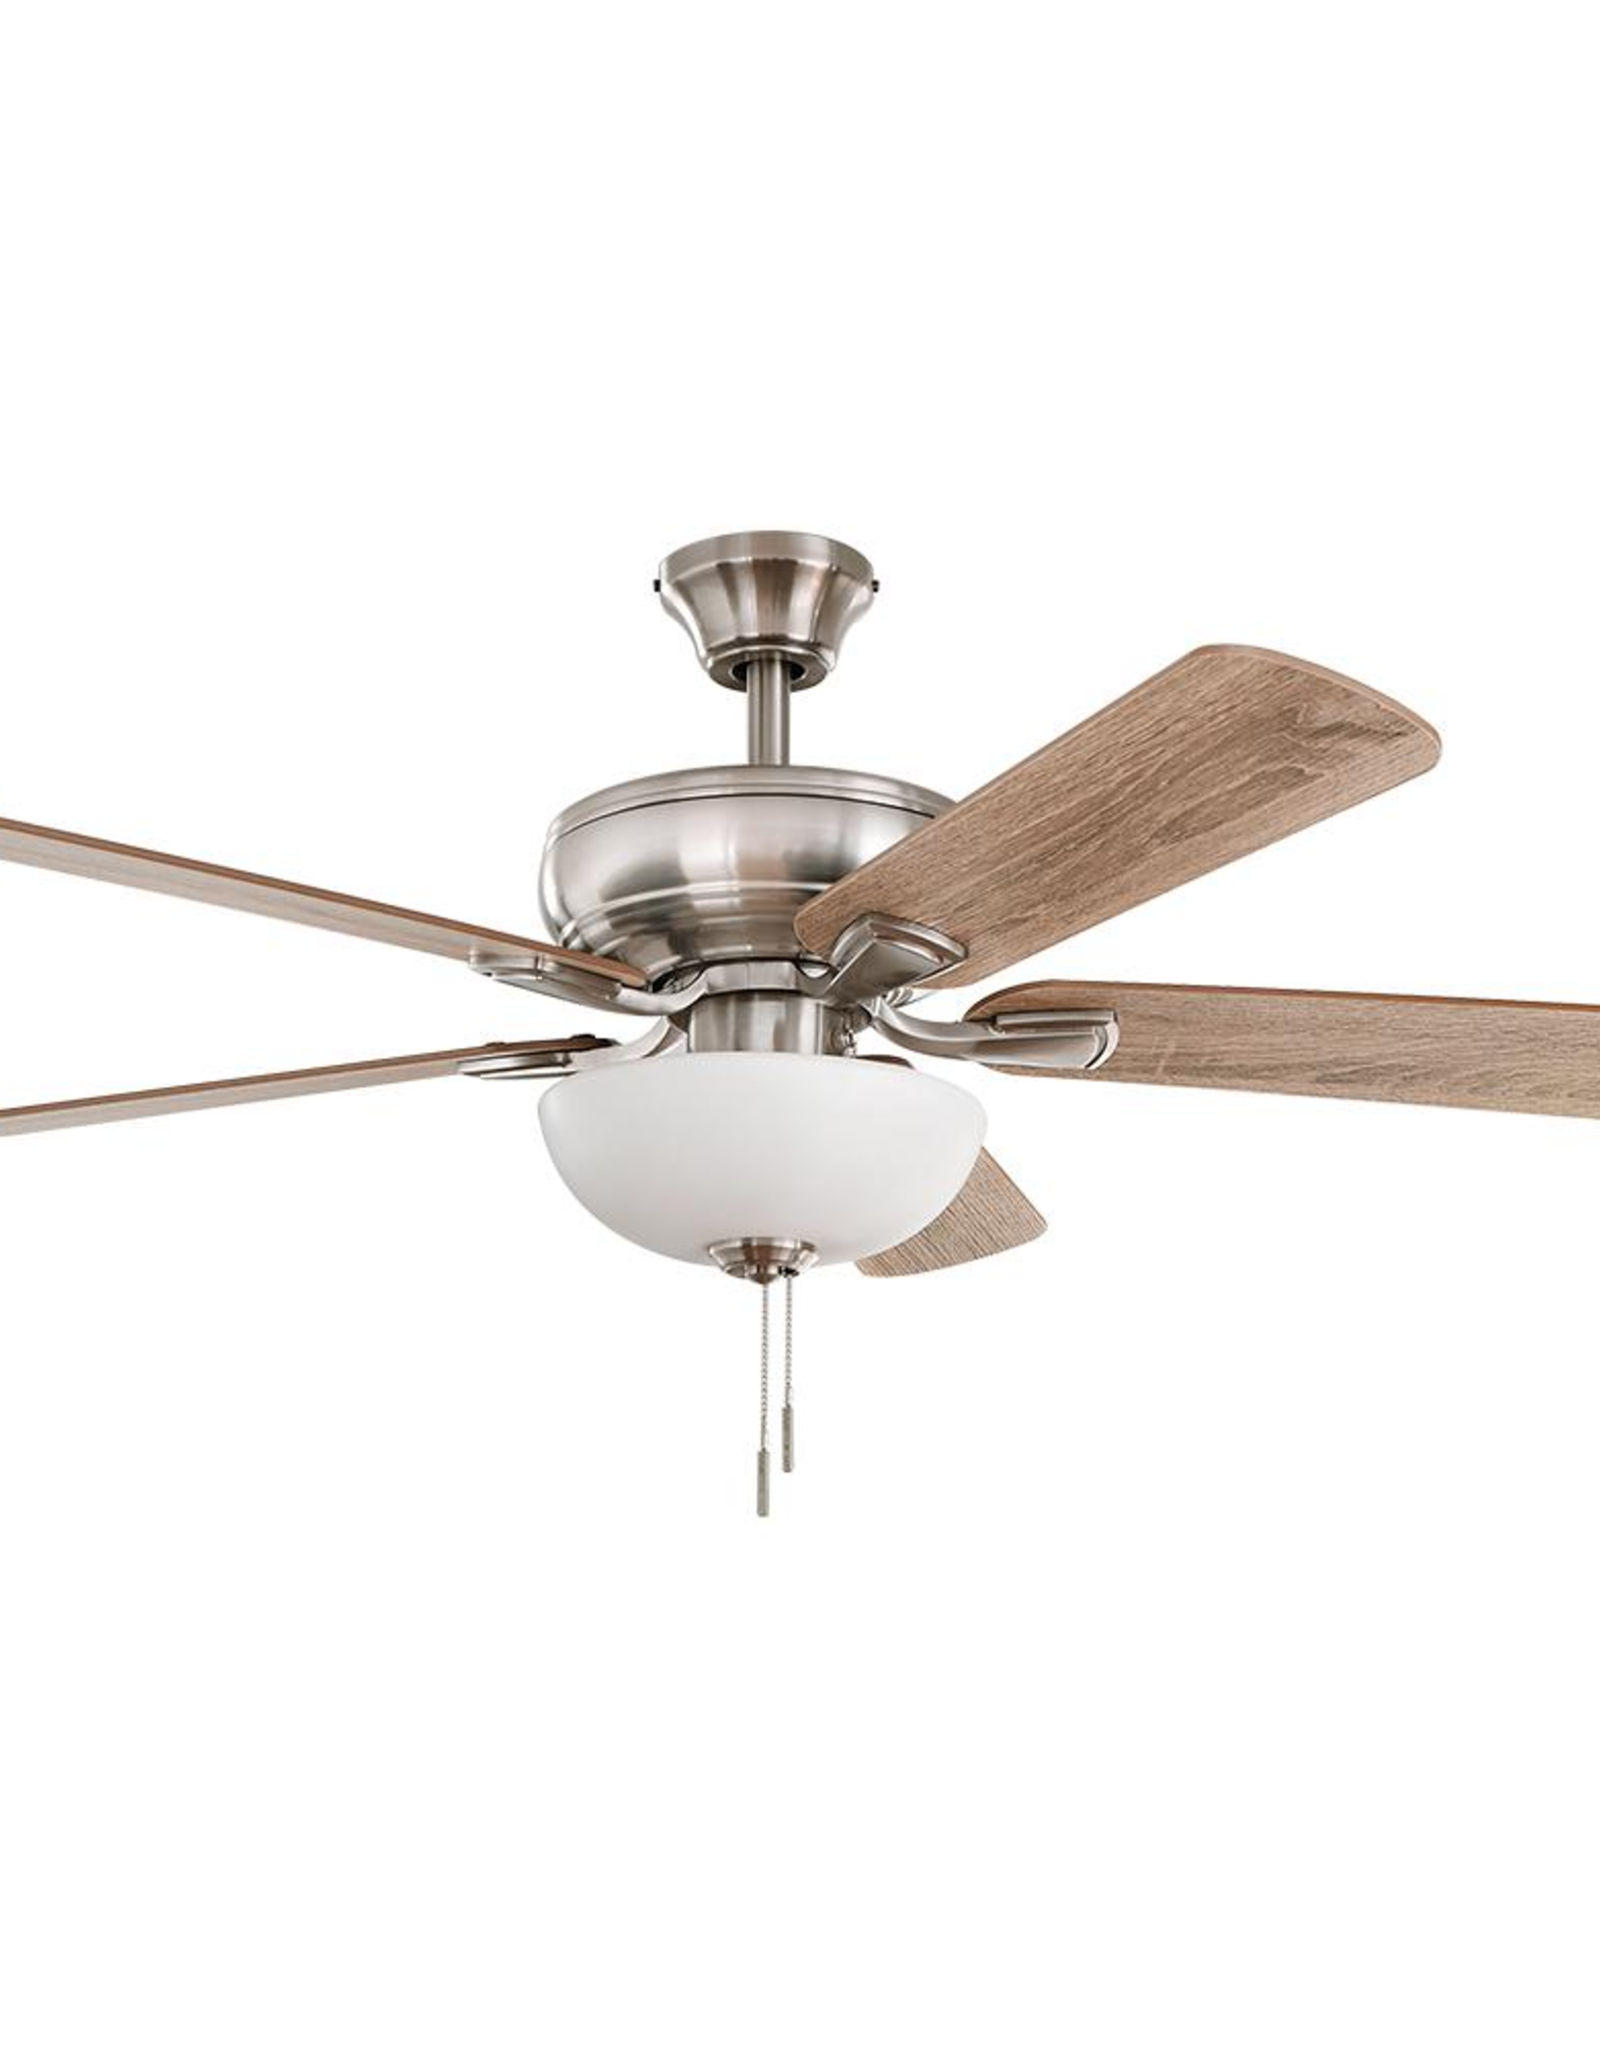 Hampton Bay Rothley II 52 in. Brushed Nickel LED Ceiling Fan with Light Kit